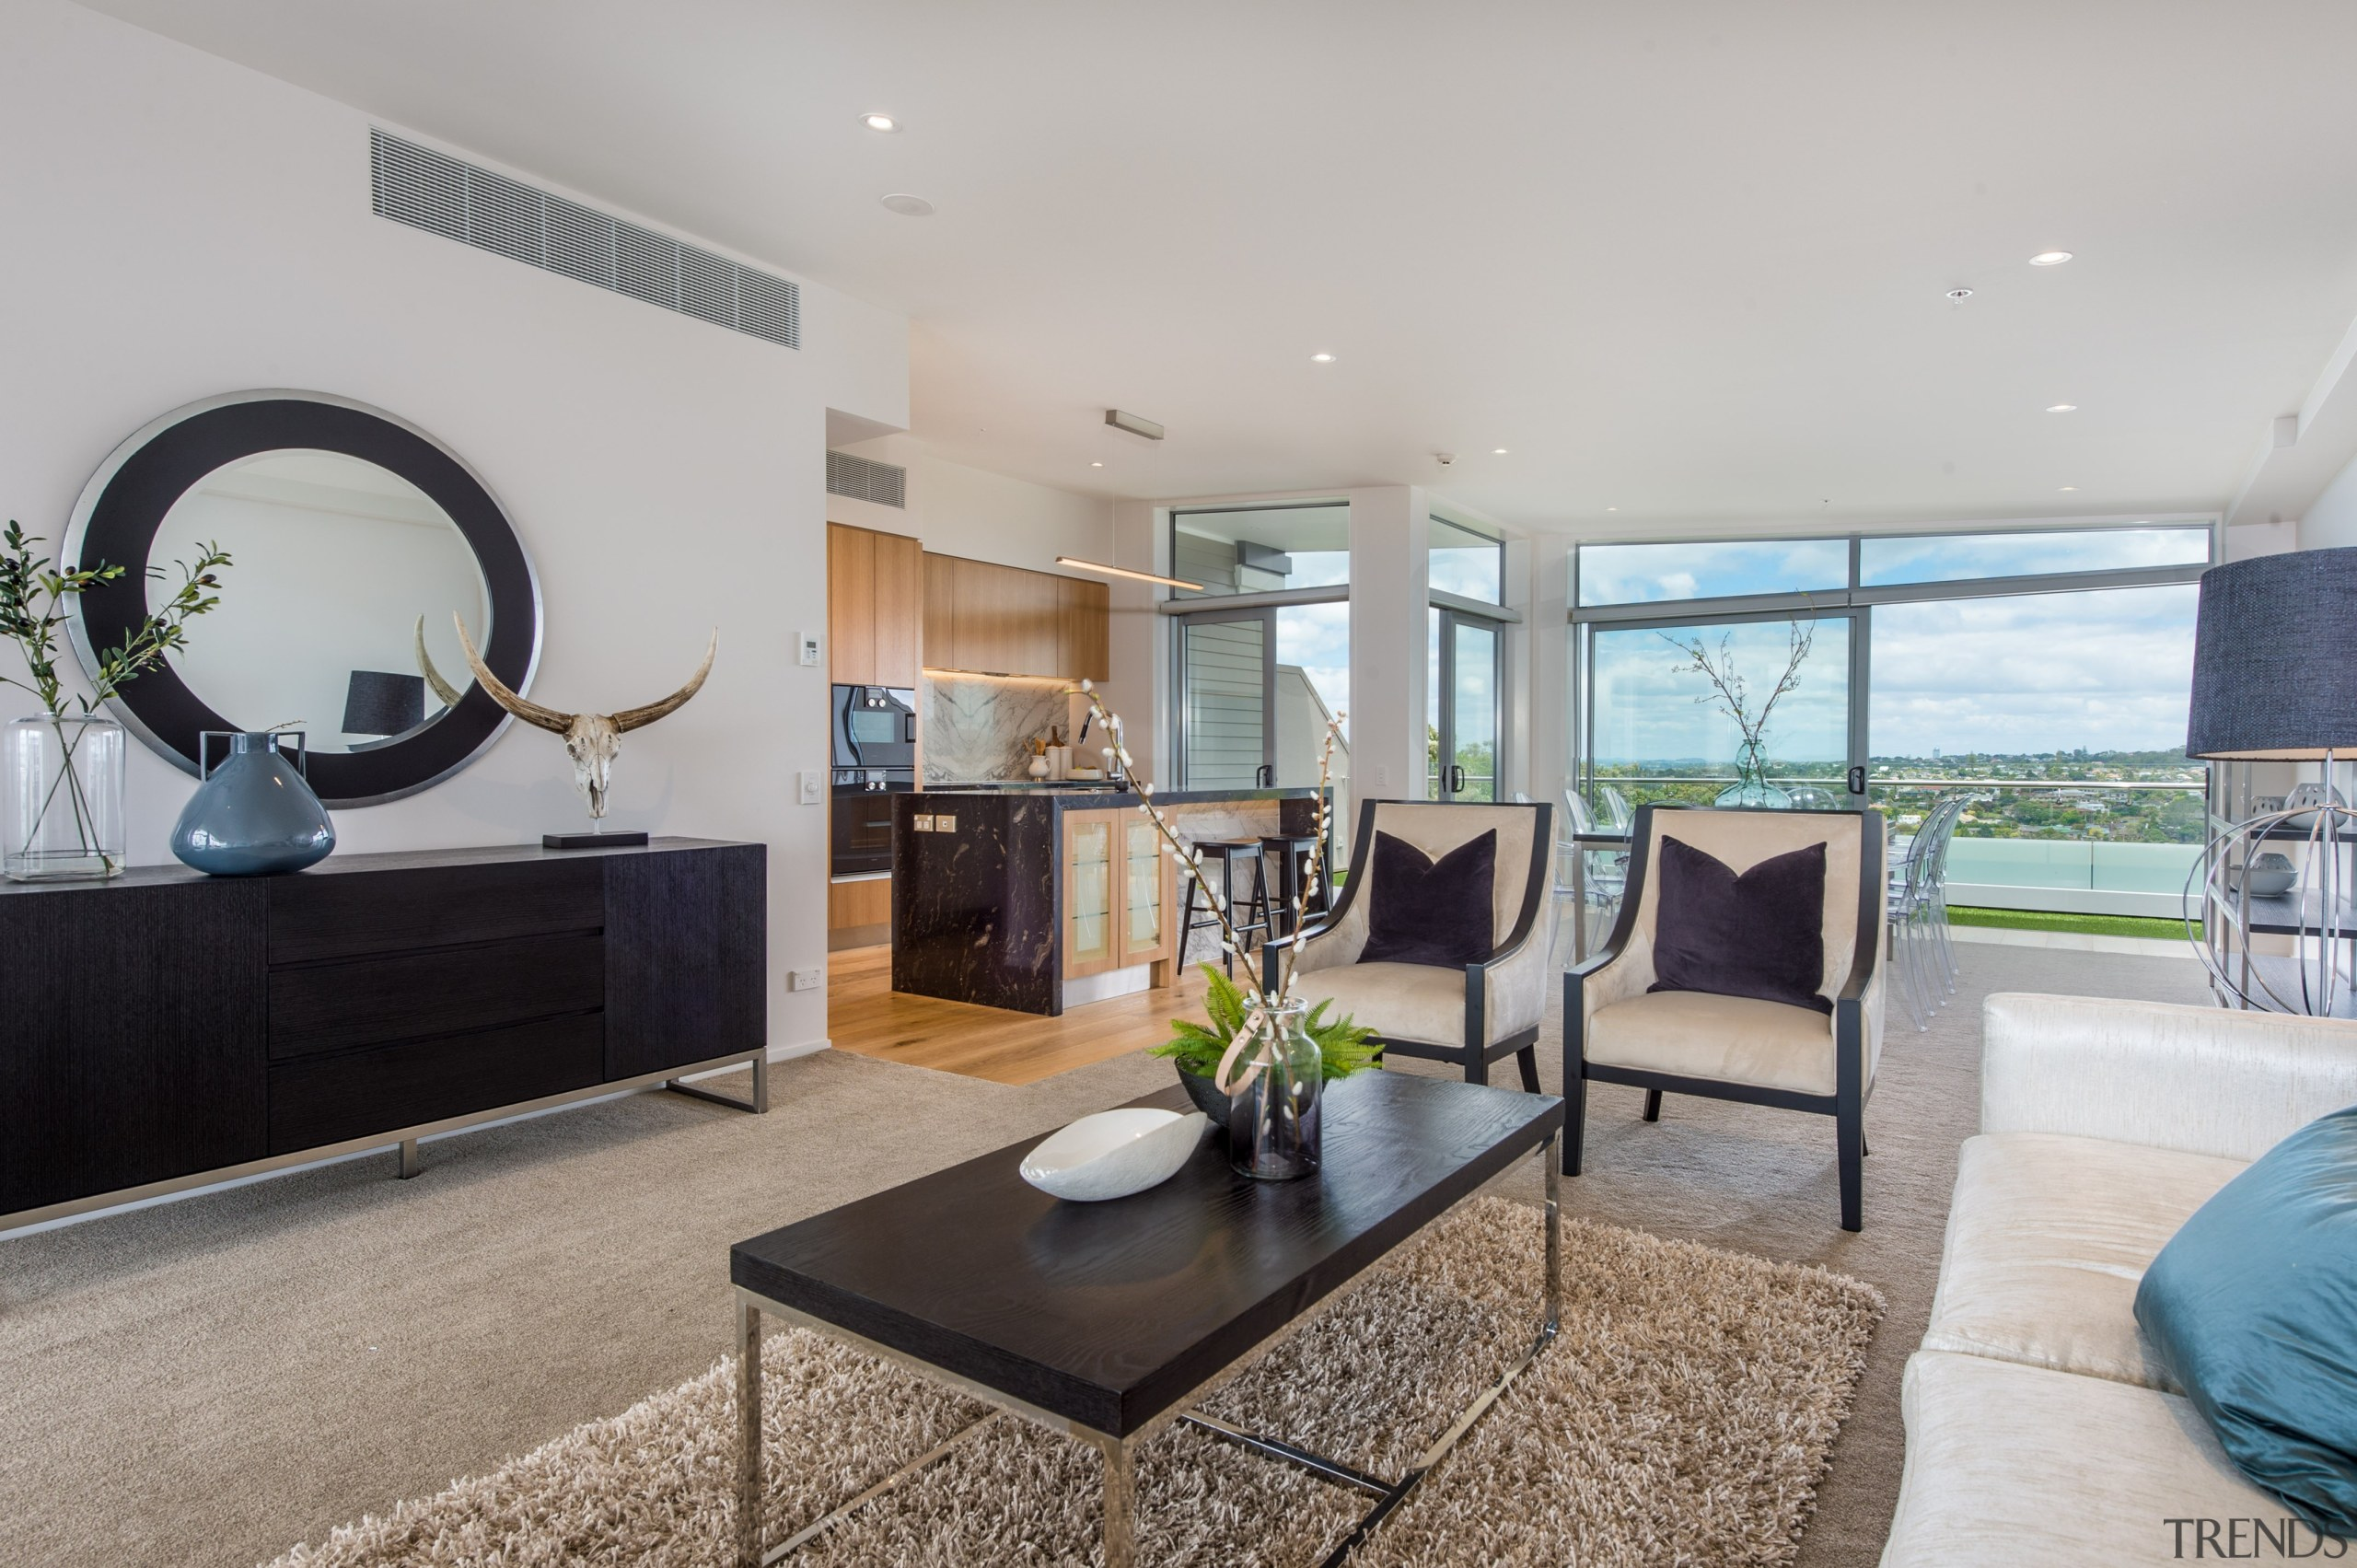 Dining and living area with seaview - Dining home, interior design, living room, property, real estate, gray